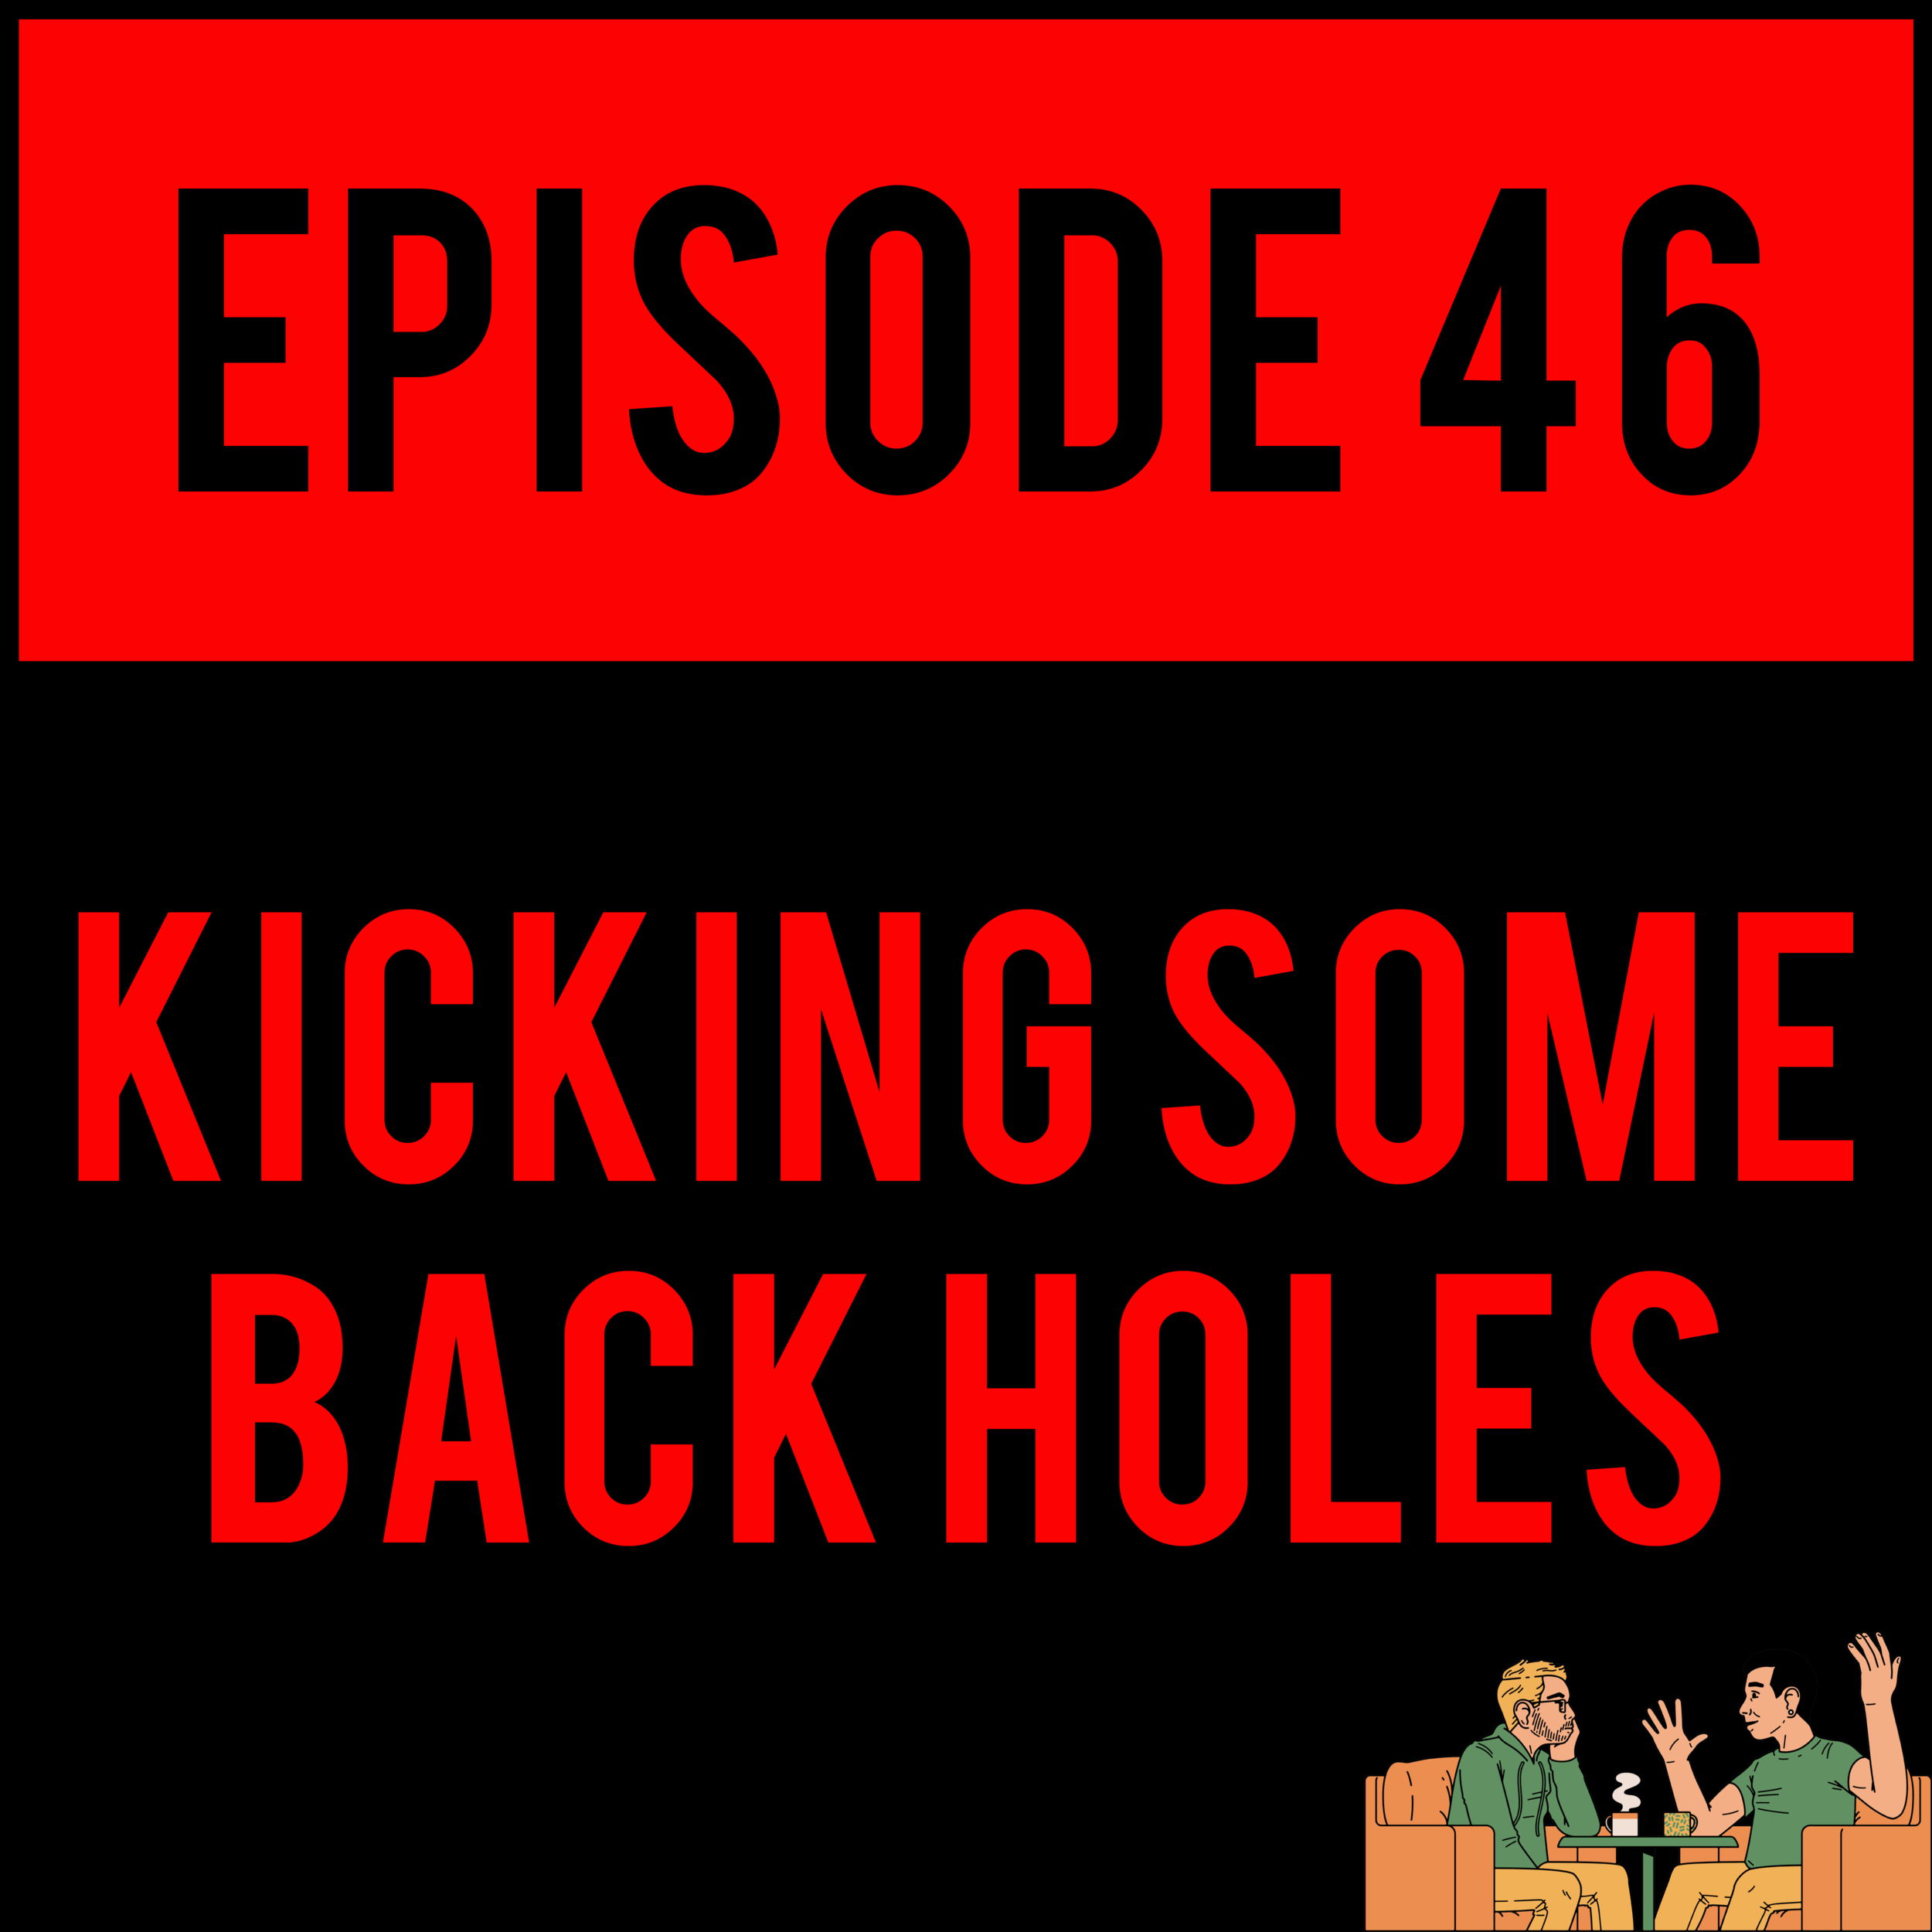 EPISODE 46 - Dead DnD parties and dead feelings galore- KICKING SOME BACK HOLES - EPISODE 46 needs you almost as much as you need it.